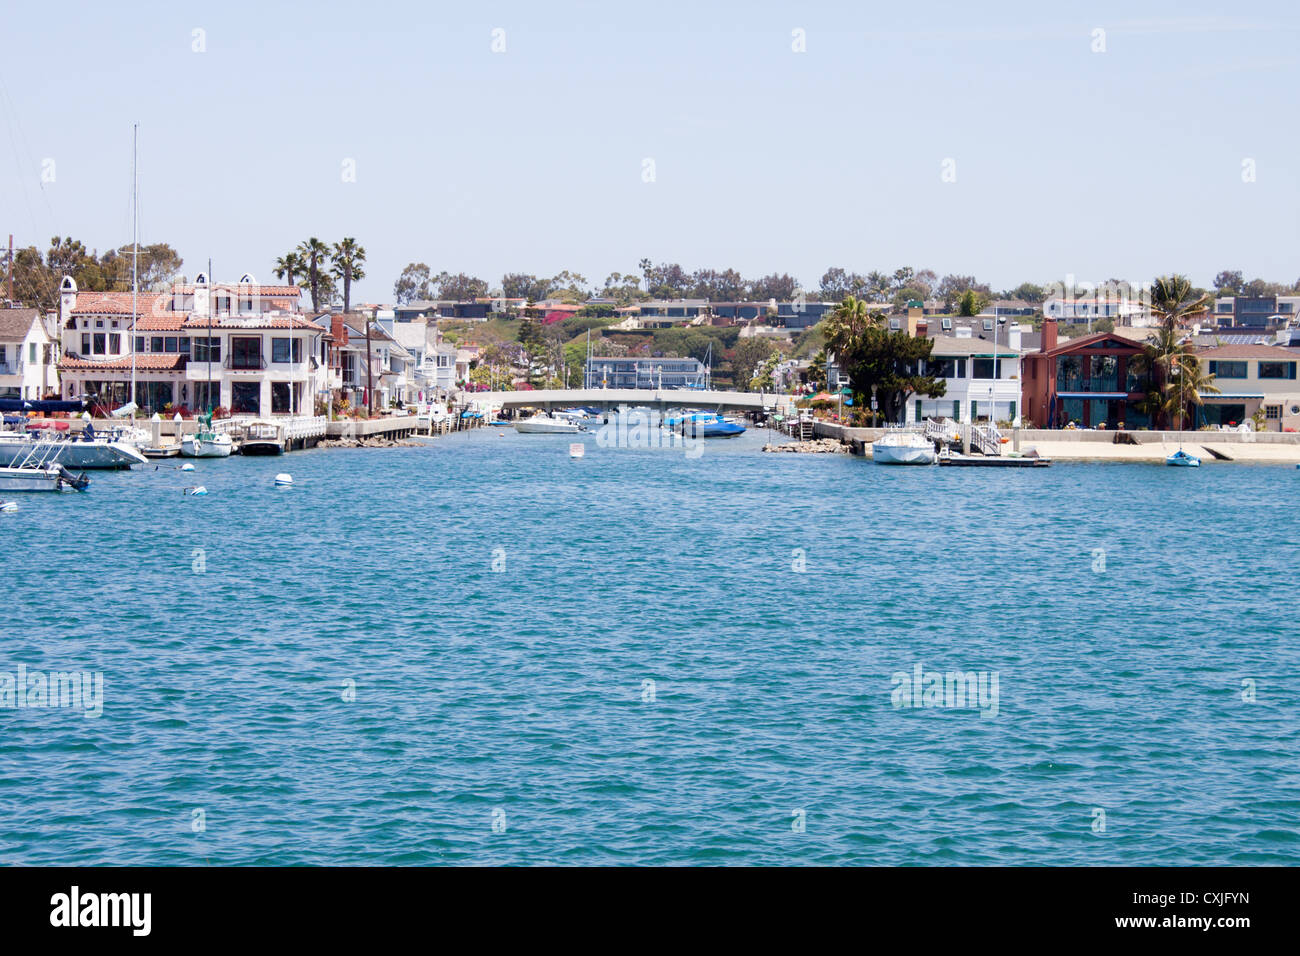 Harbor Island Newport Beach